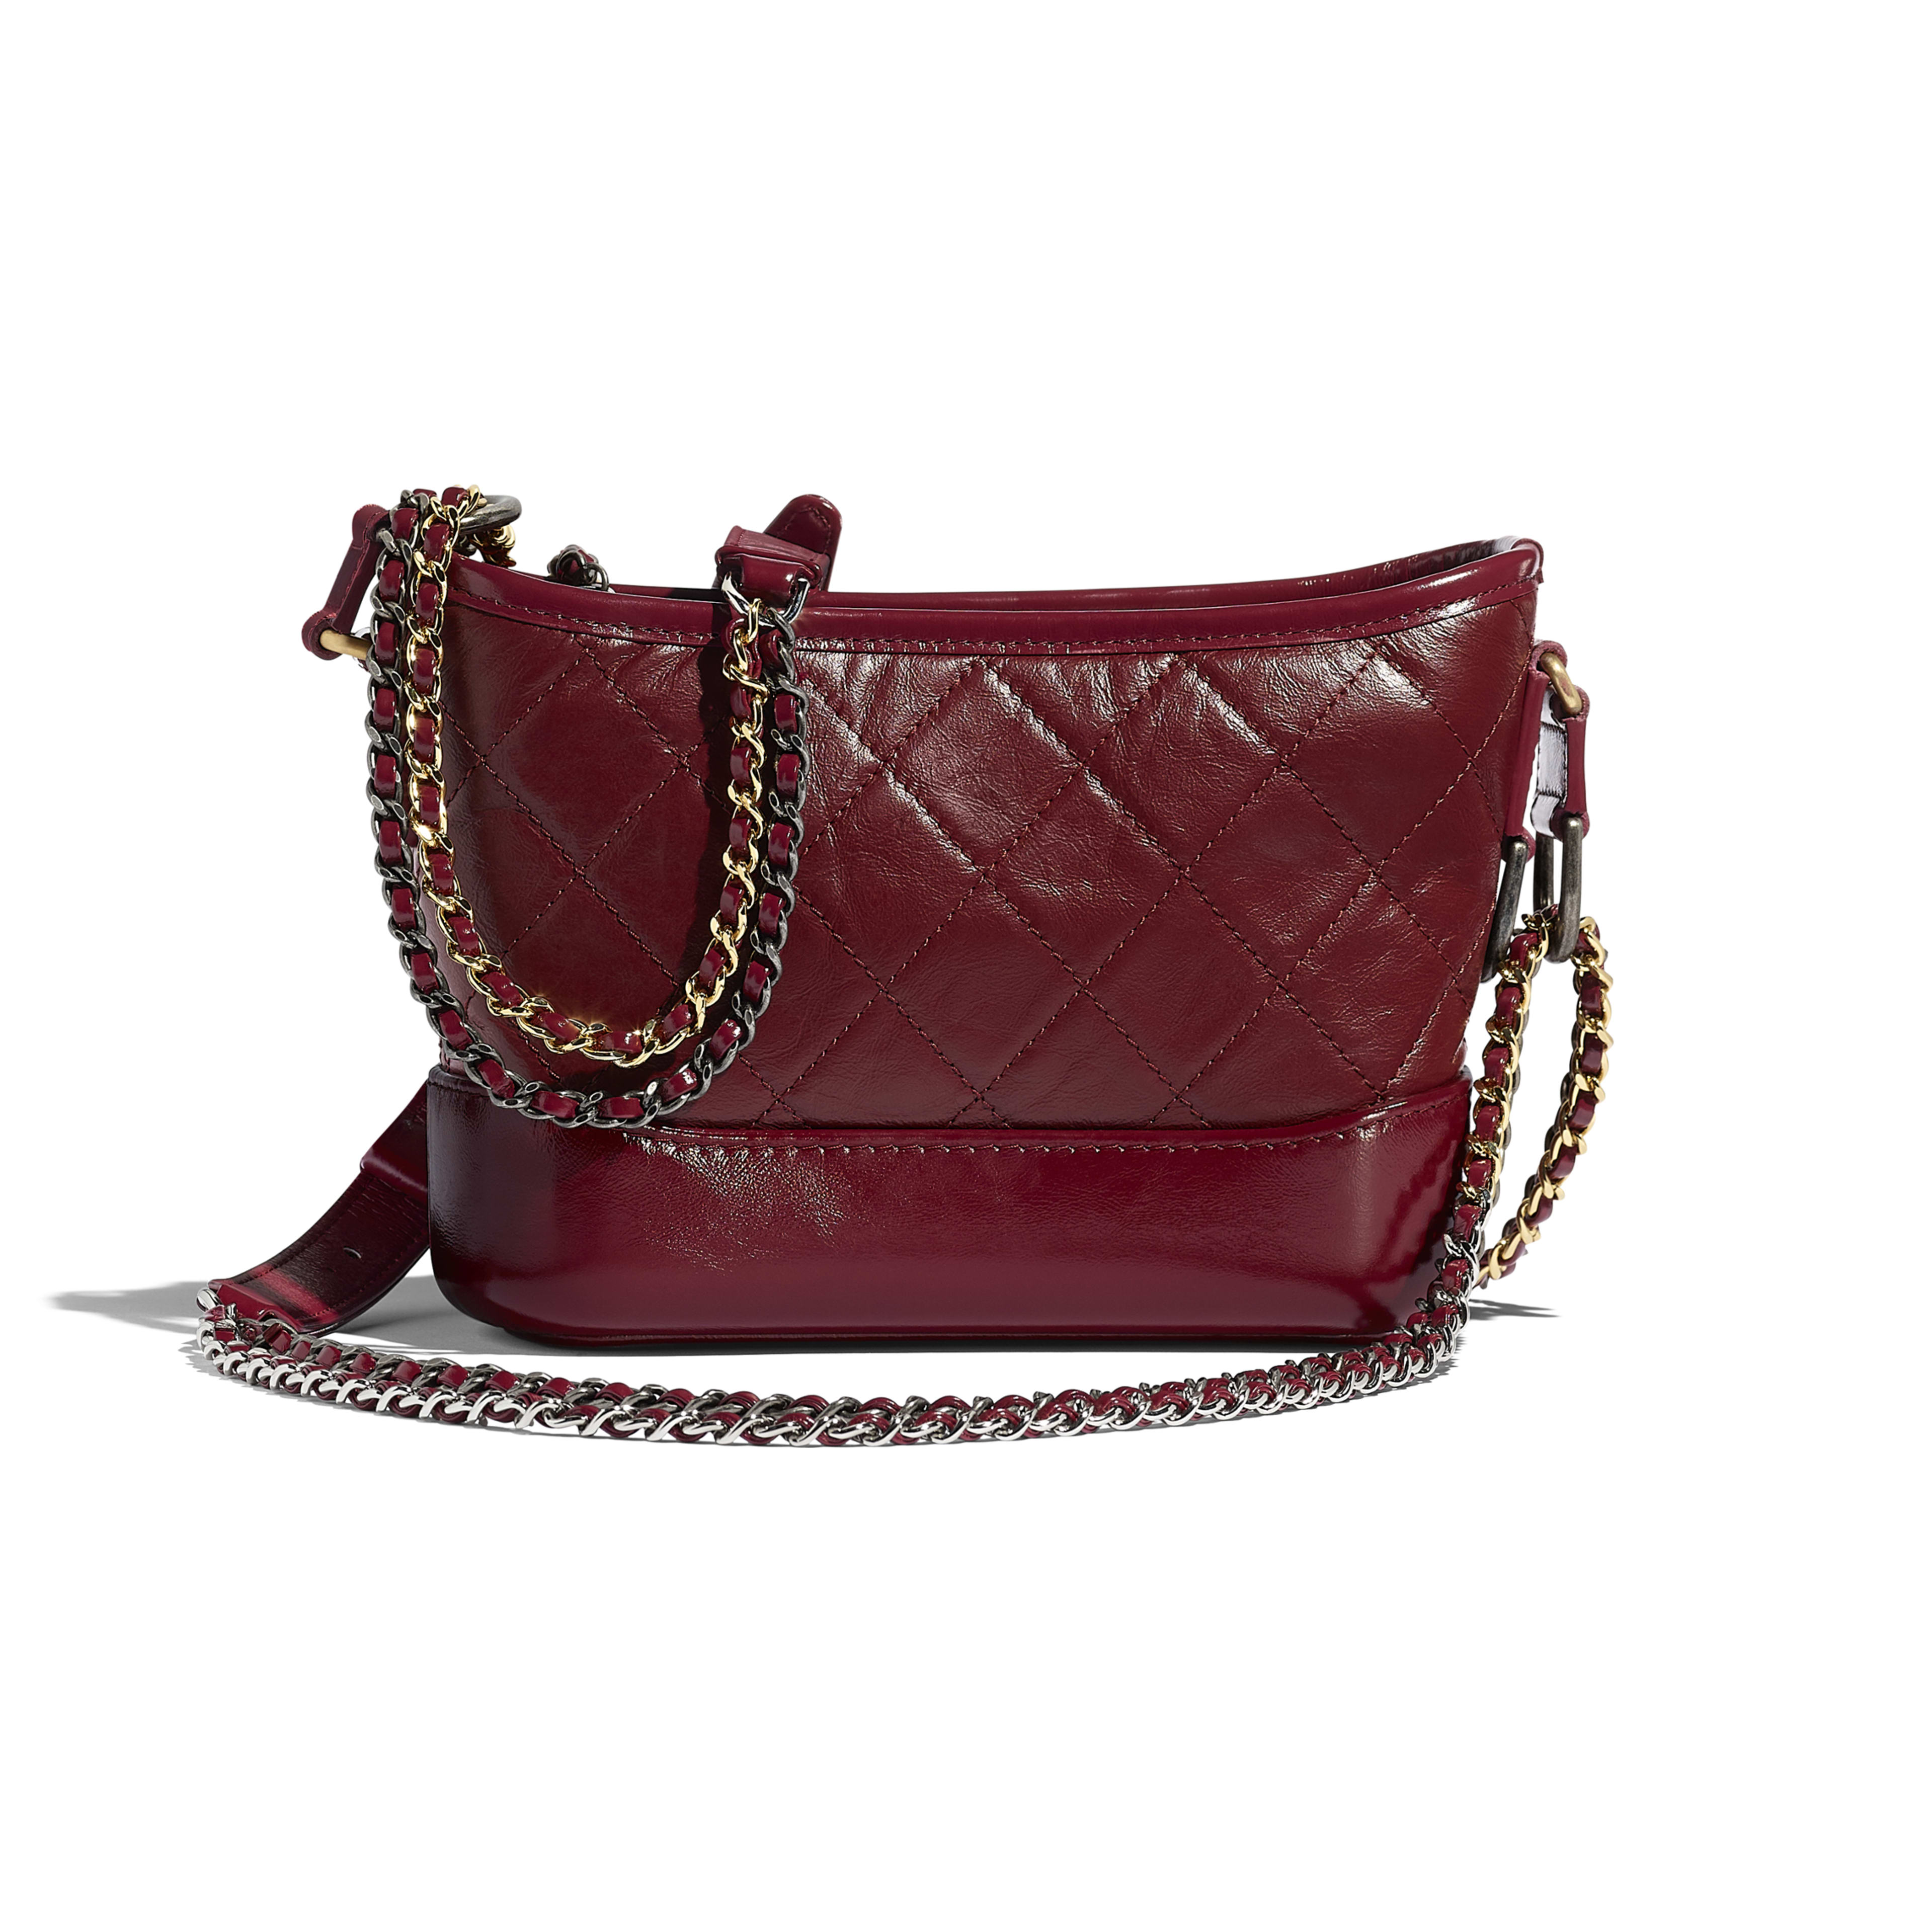 Aged Calfskin Smooth Silver Tone Gold Metal Burgundy Chanel S Gabrielle Small Hobo Bag